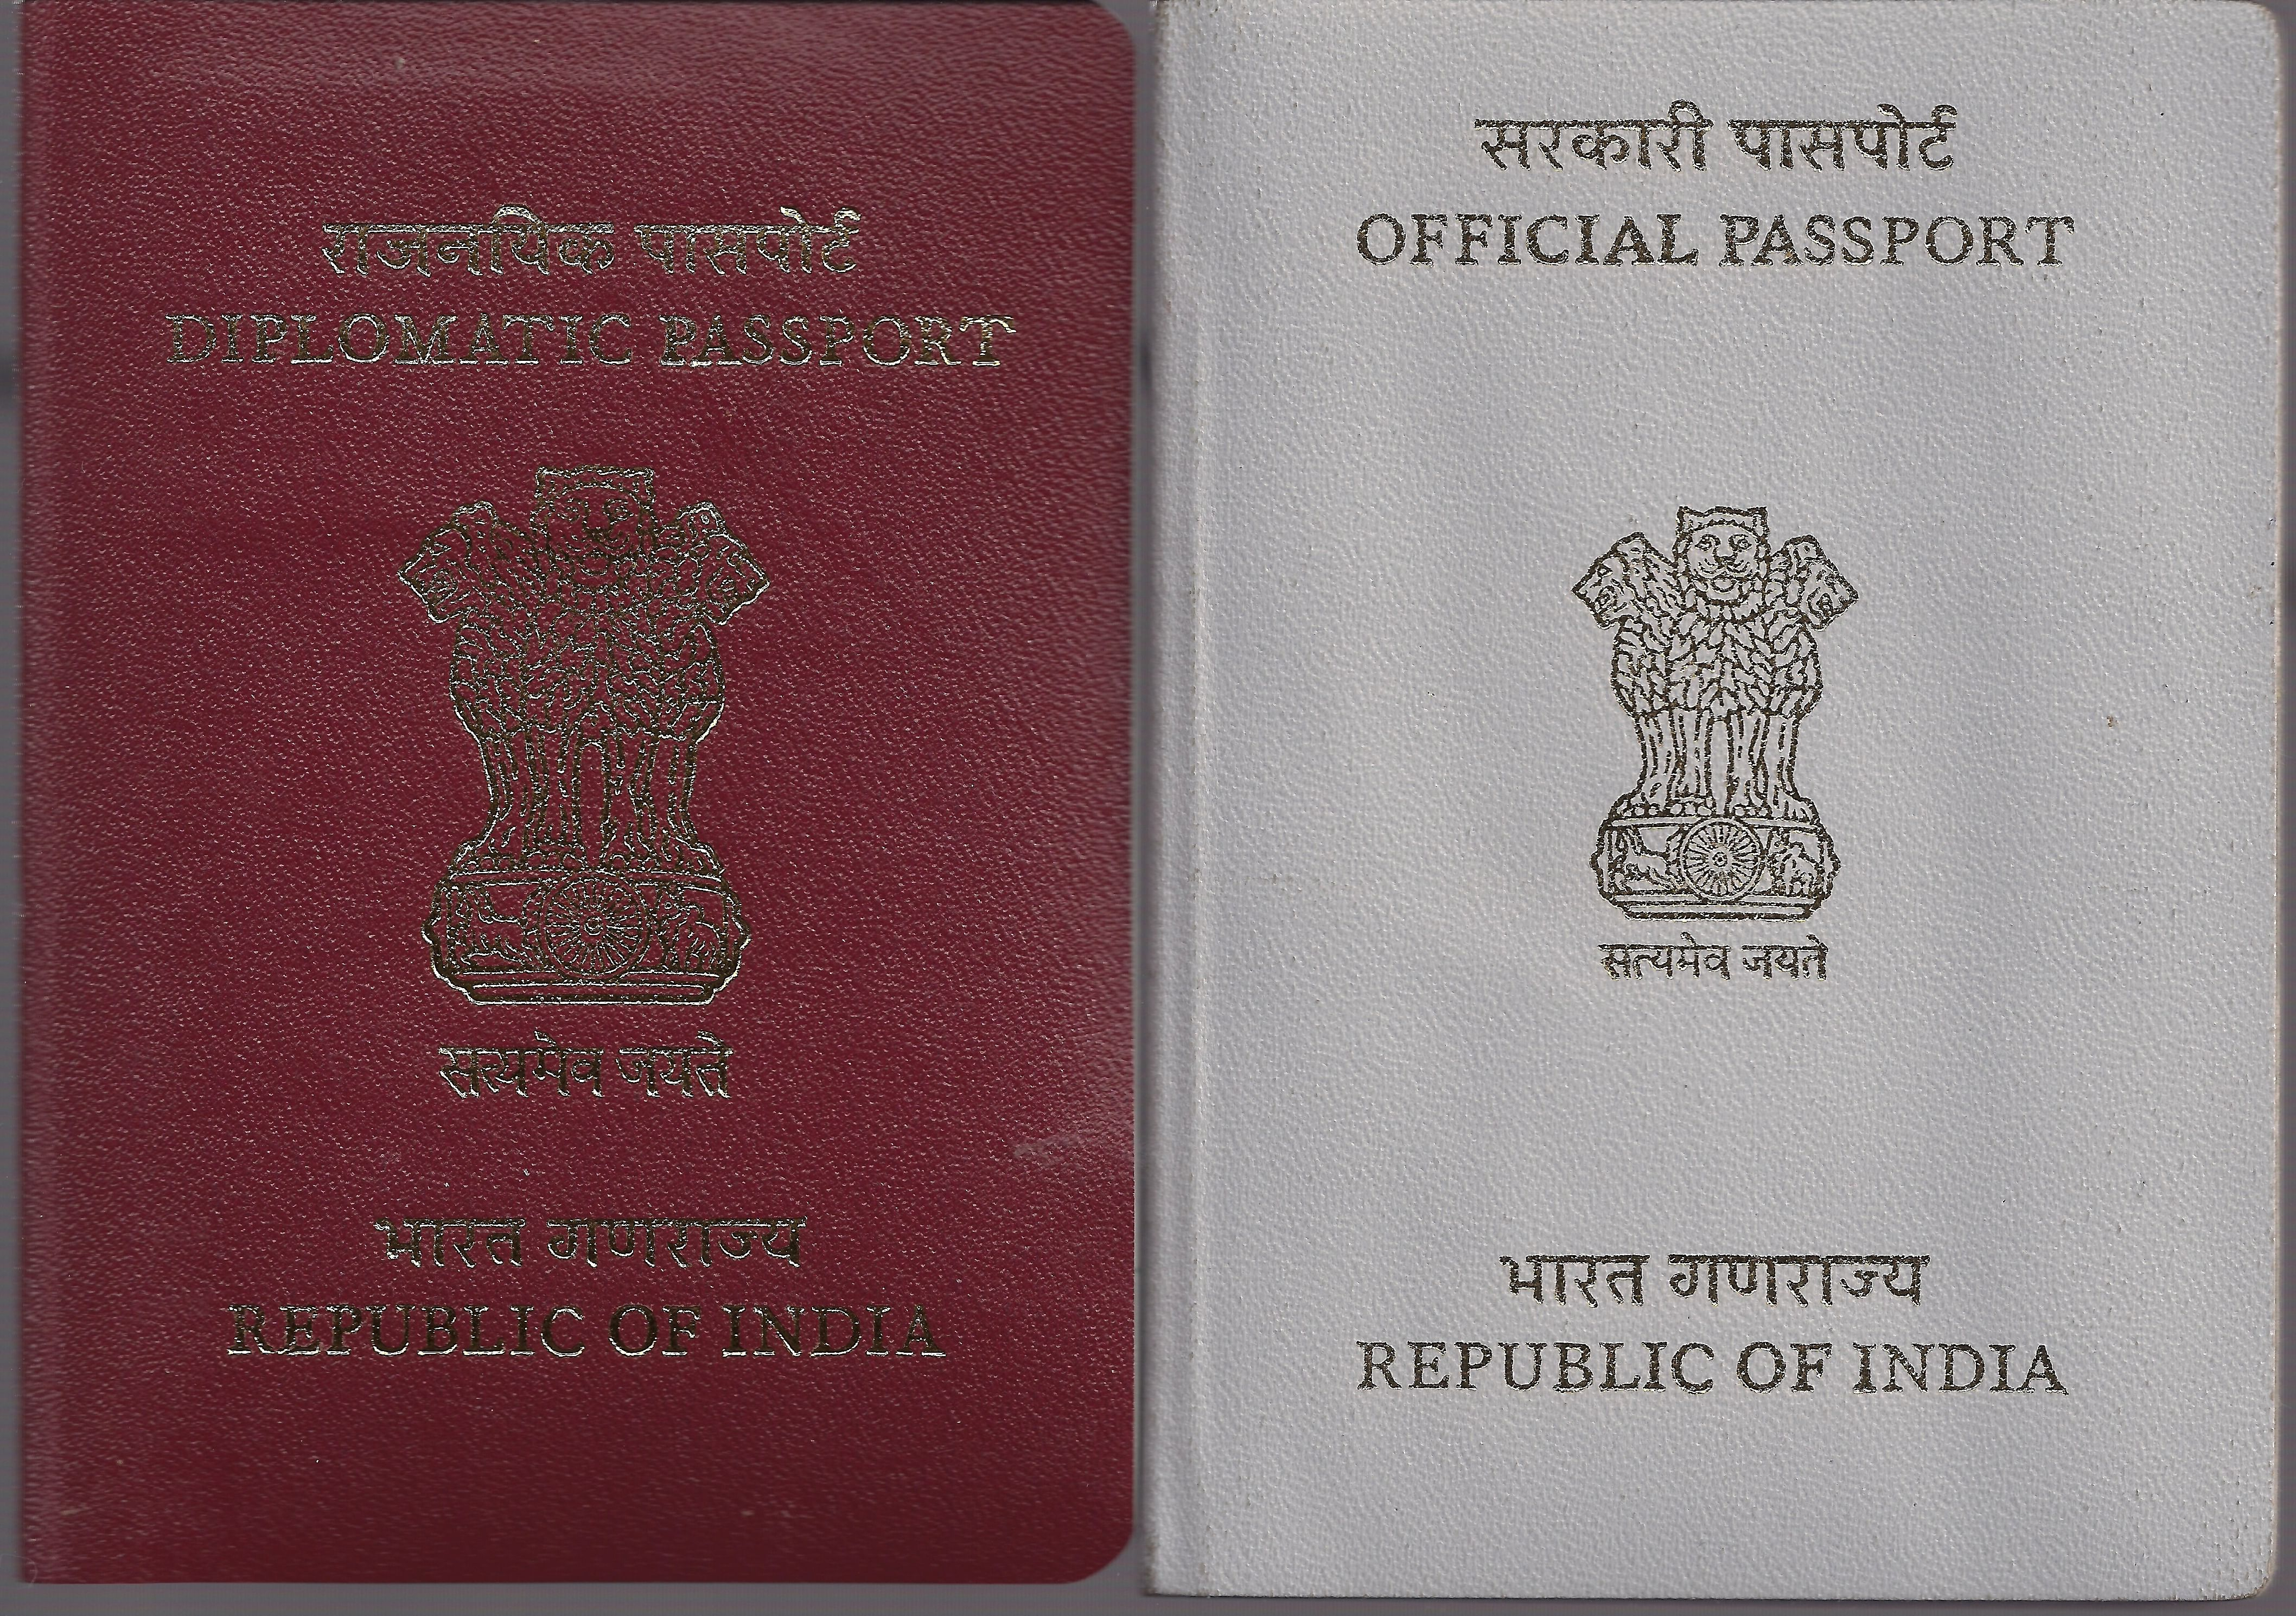 New passports to drop parents' names, address